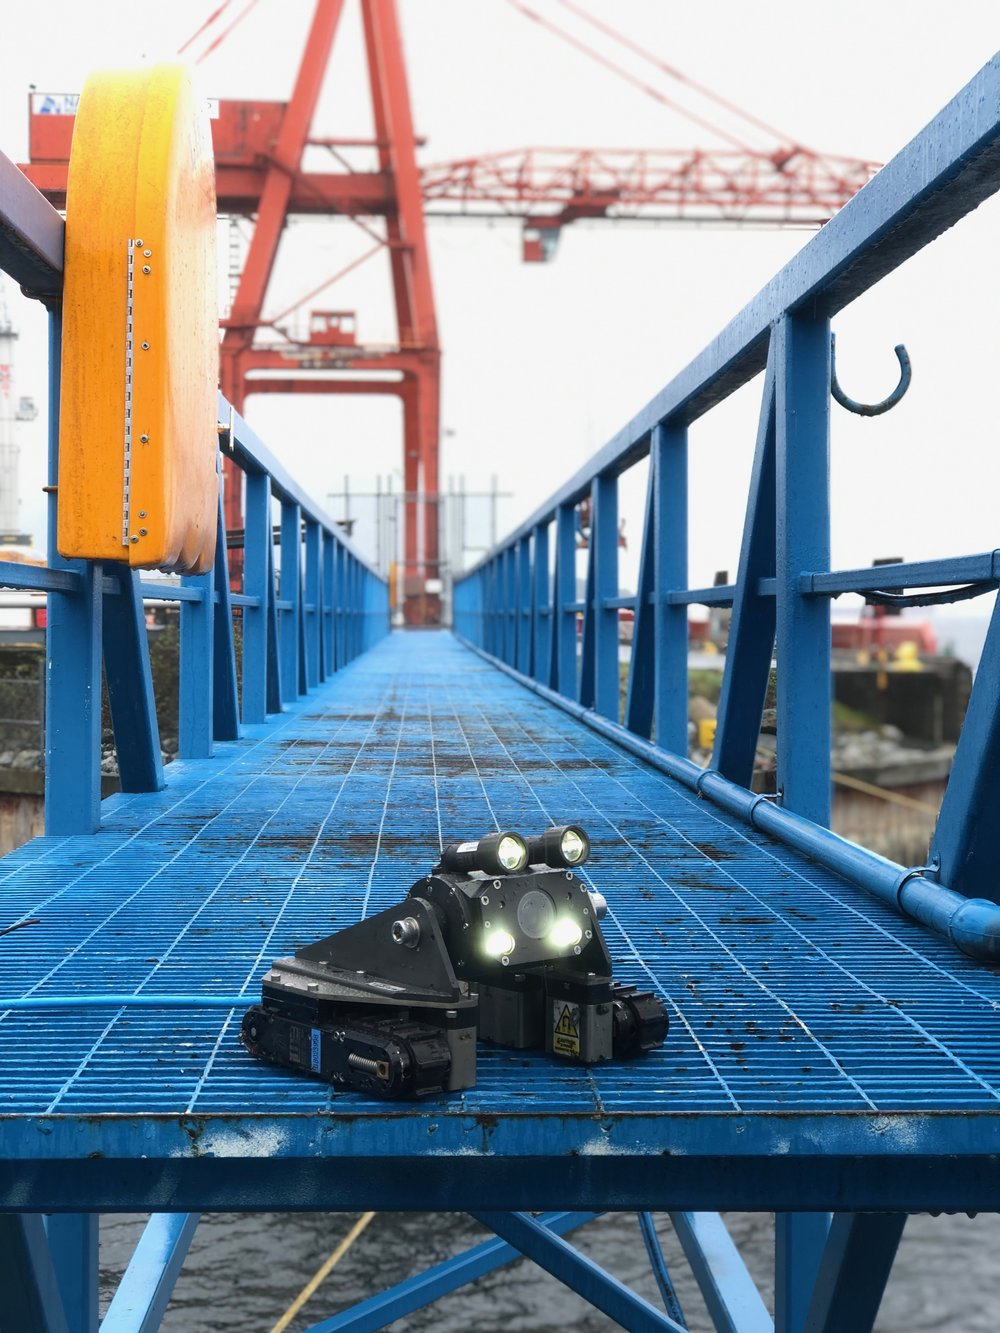 MaggHD™ miniature magnetic crawler for subsea operations